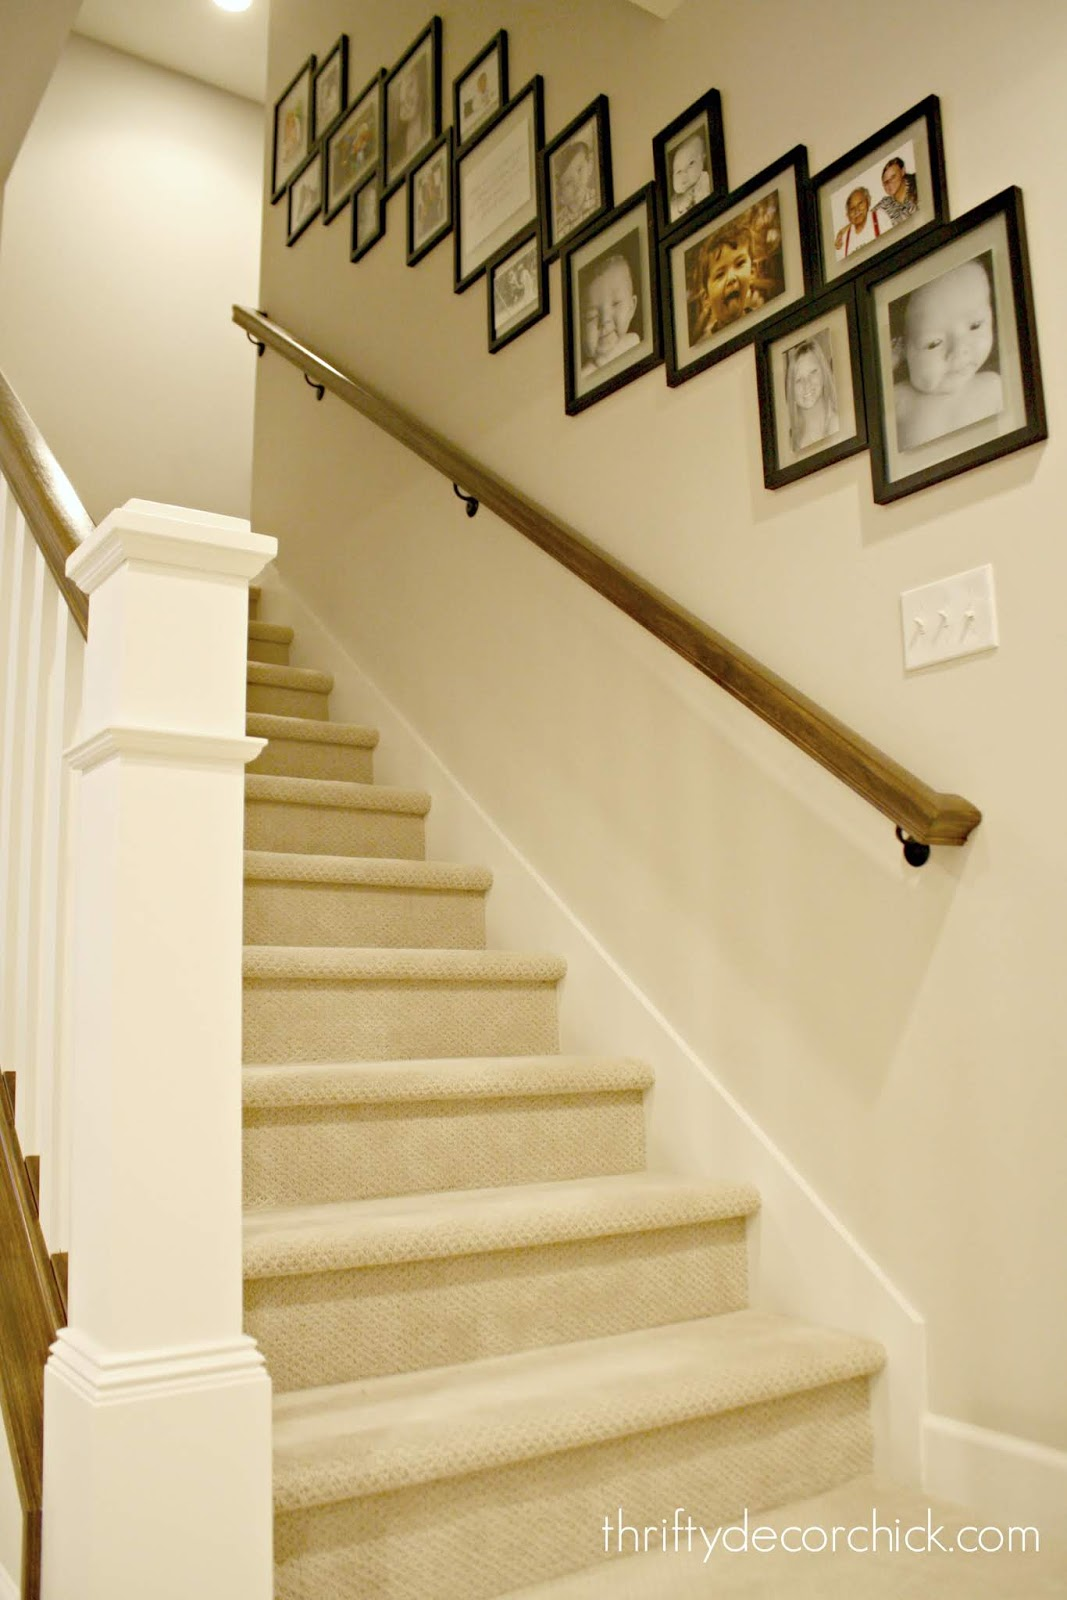 Lighting Basement Washroom Stairs: The Pottery Barn Look For WAY Less From Thrifty Decor Chick